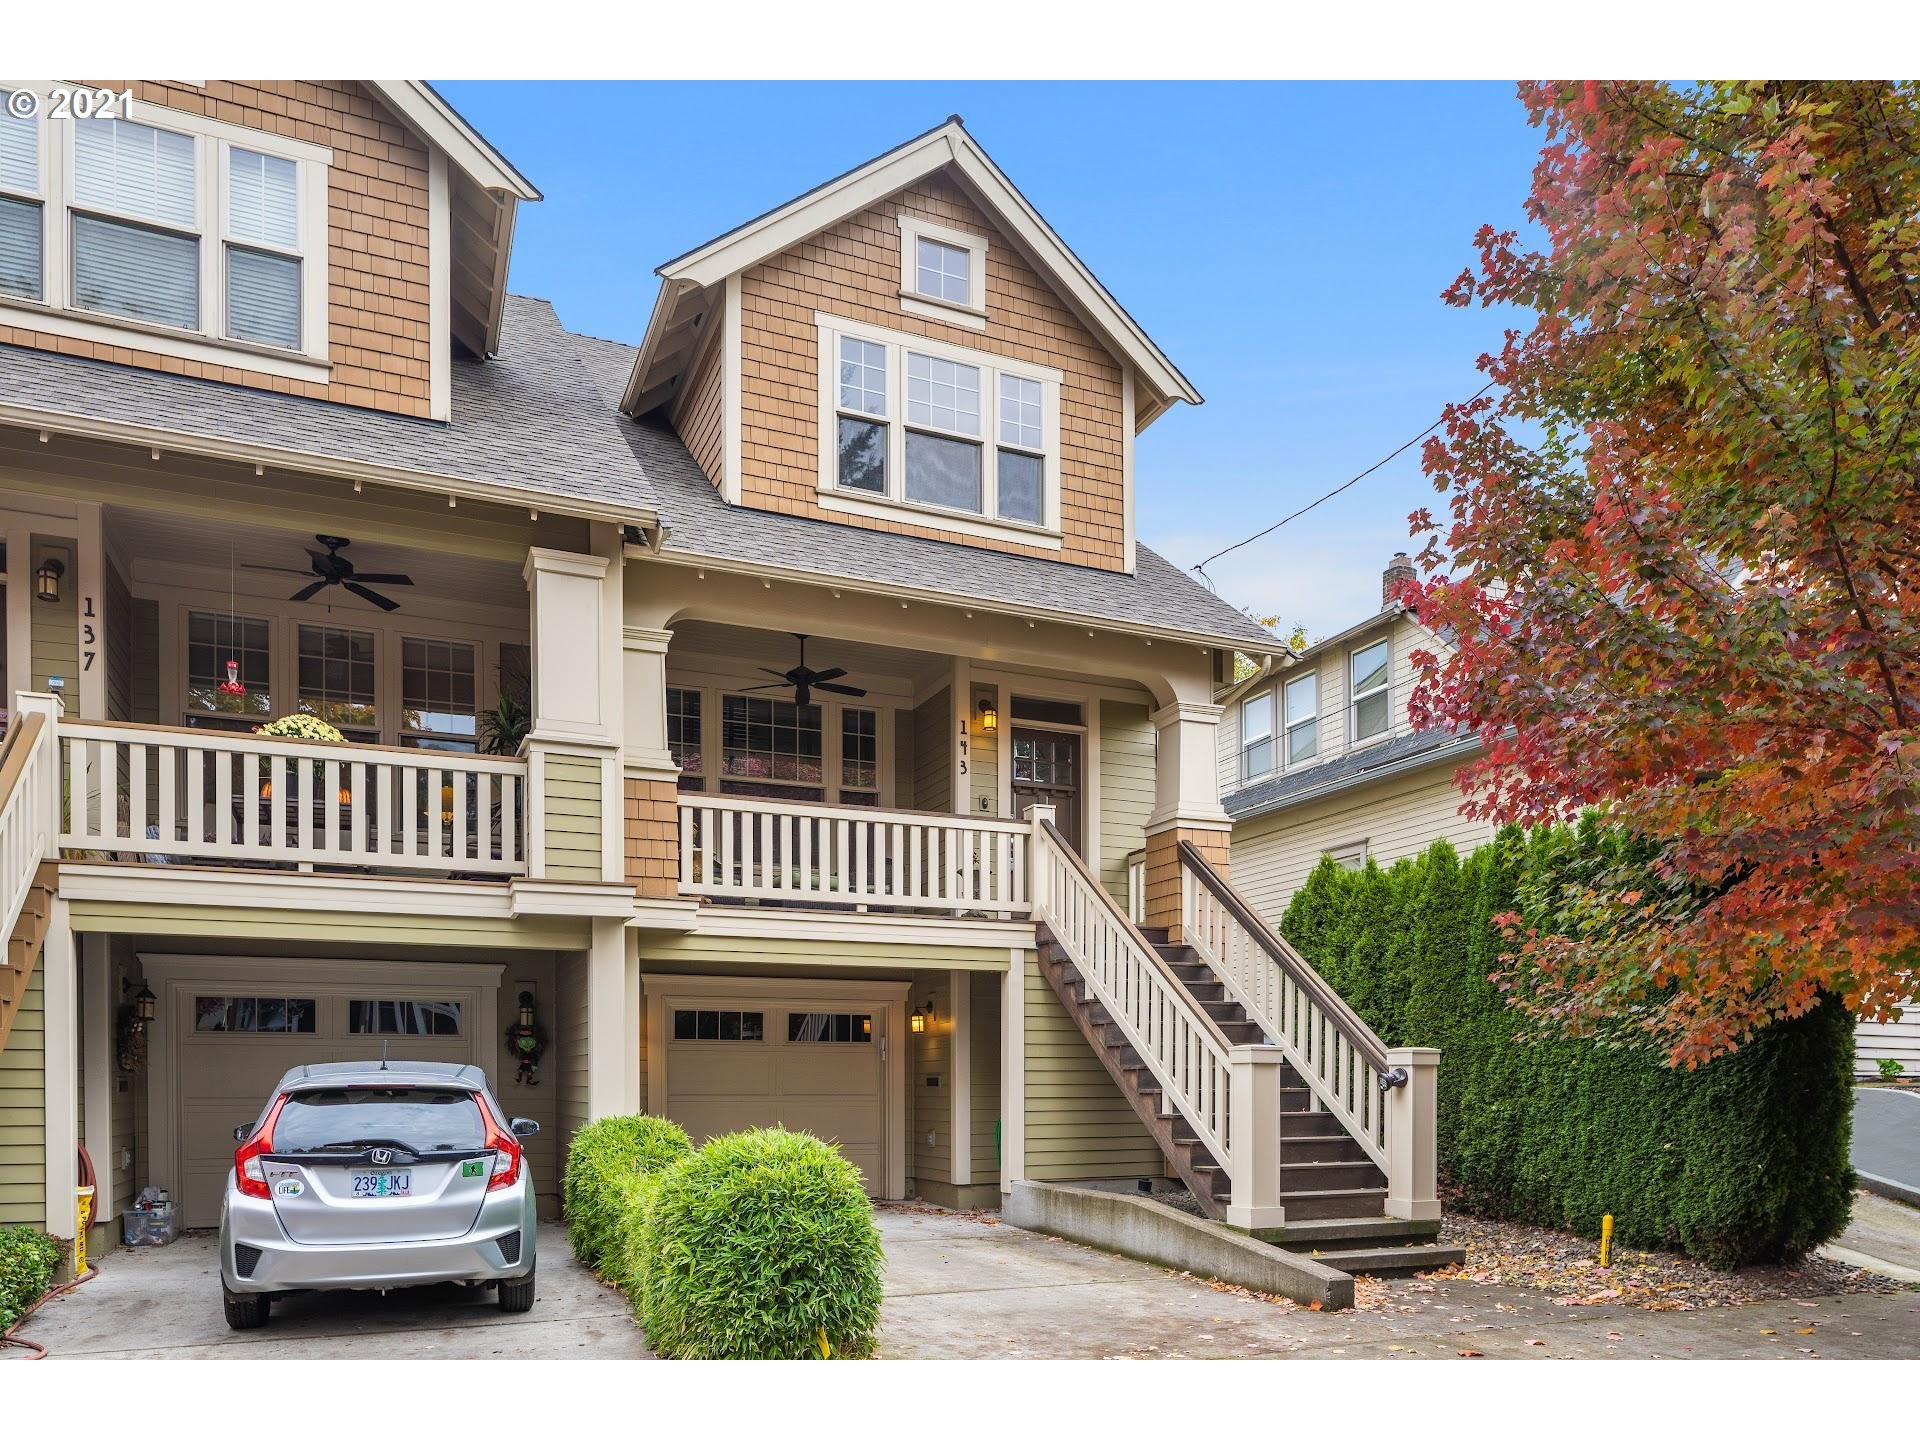 Exceptional townhome on quiet street in Boise-Eliot neighborhood! Quality craftsmanship & finishes. Gourmet kitchen includes; gas Wolf range, wine cooler & expansive island. Primary ensuite bedroom w/marble walk-in shower & double closets. Lower level guest quarters or private office space. Fenced backyard & peaceful Zen garden. Attached garage, ample storage. Just blocks from trendy Williams Corridor restaurants, shops & New Seasons grocery. Walk Score 91 Bike Score 92. Energy efficient HES 8! [Home Energy Score = 8. HES Report at https://rpt.greenbuildingregistry.com/hes/OR10147260]